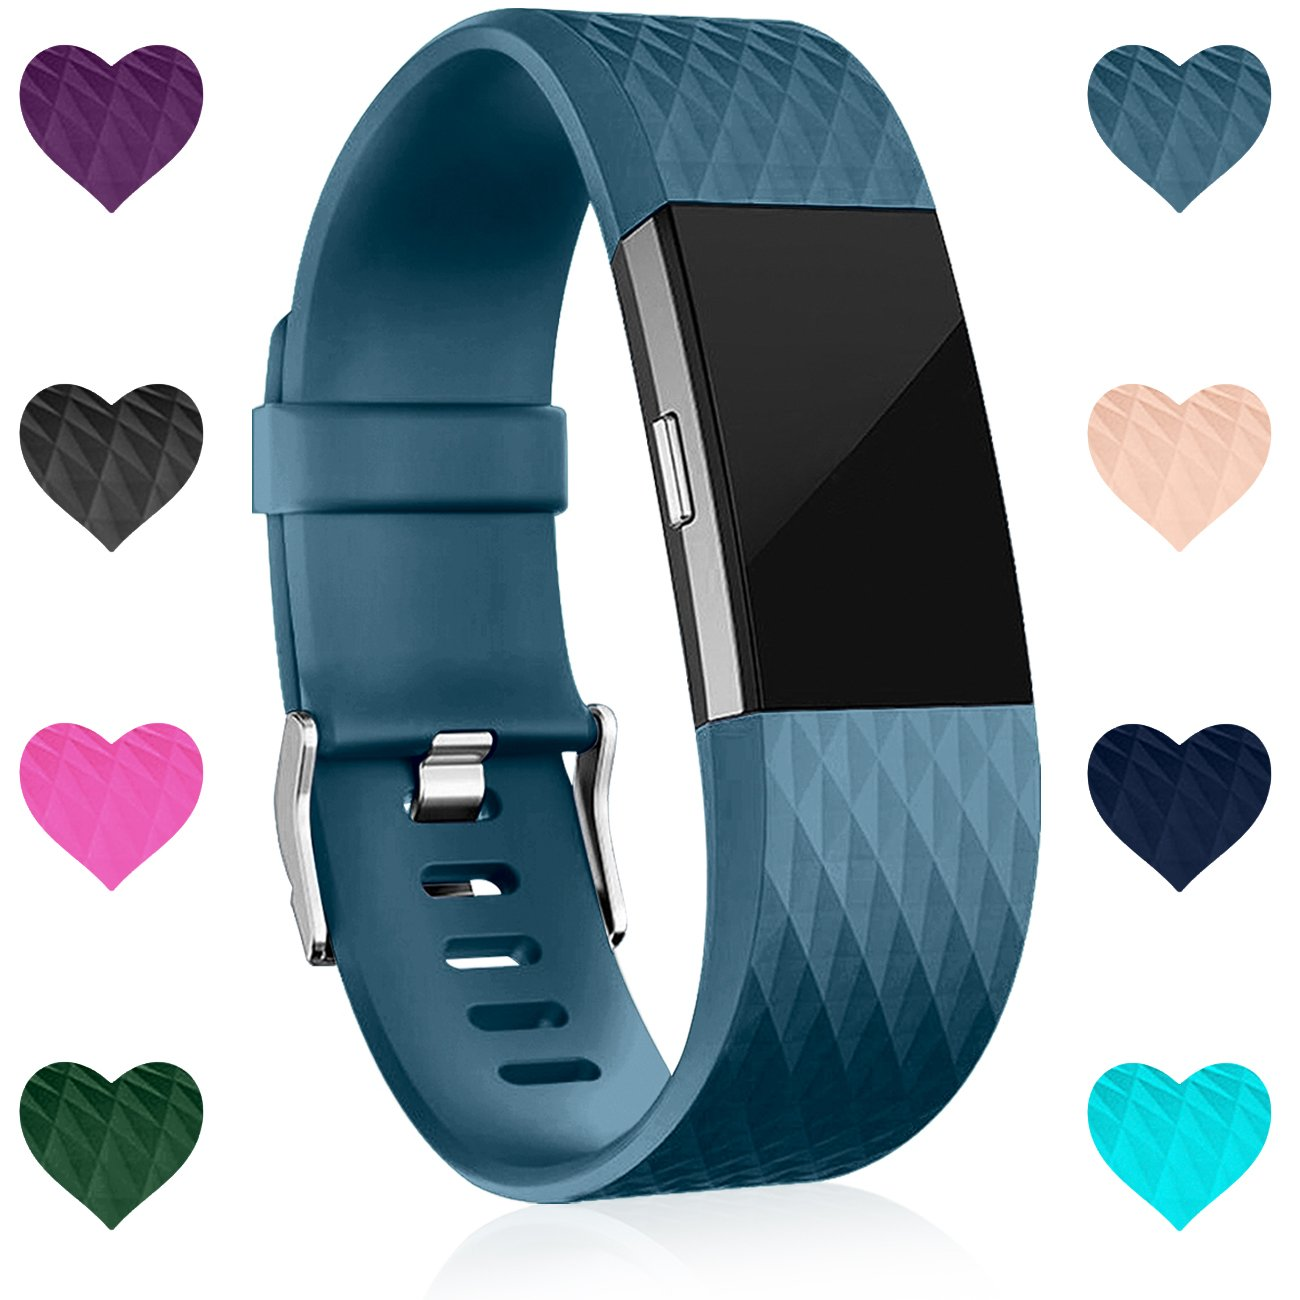 Wepro Fitbit Charge 2バンド、交換用for Fitbit Charge HR、バックル、15色、S、L 2 Large|09-Black/Navy Blue/Slate Blue 09-Black/Navy Blue/Slate Blue Large B078VNJHN6